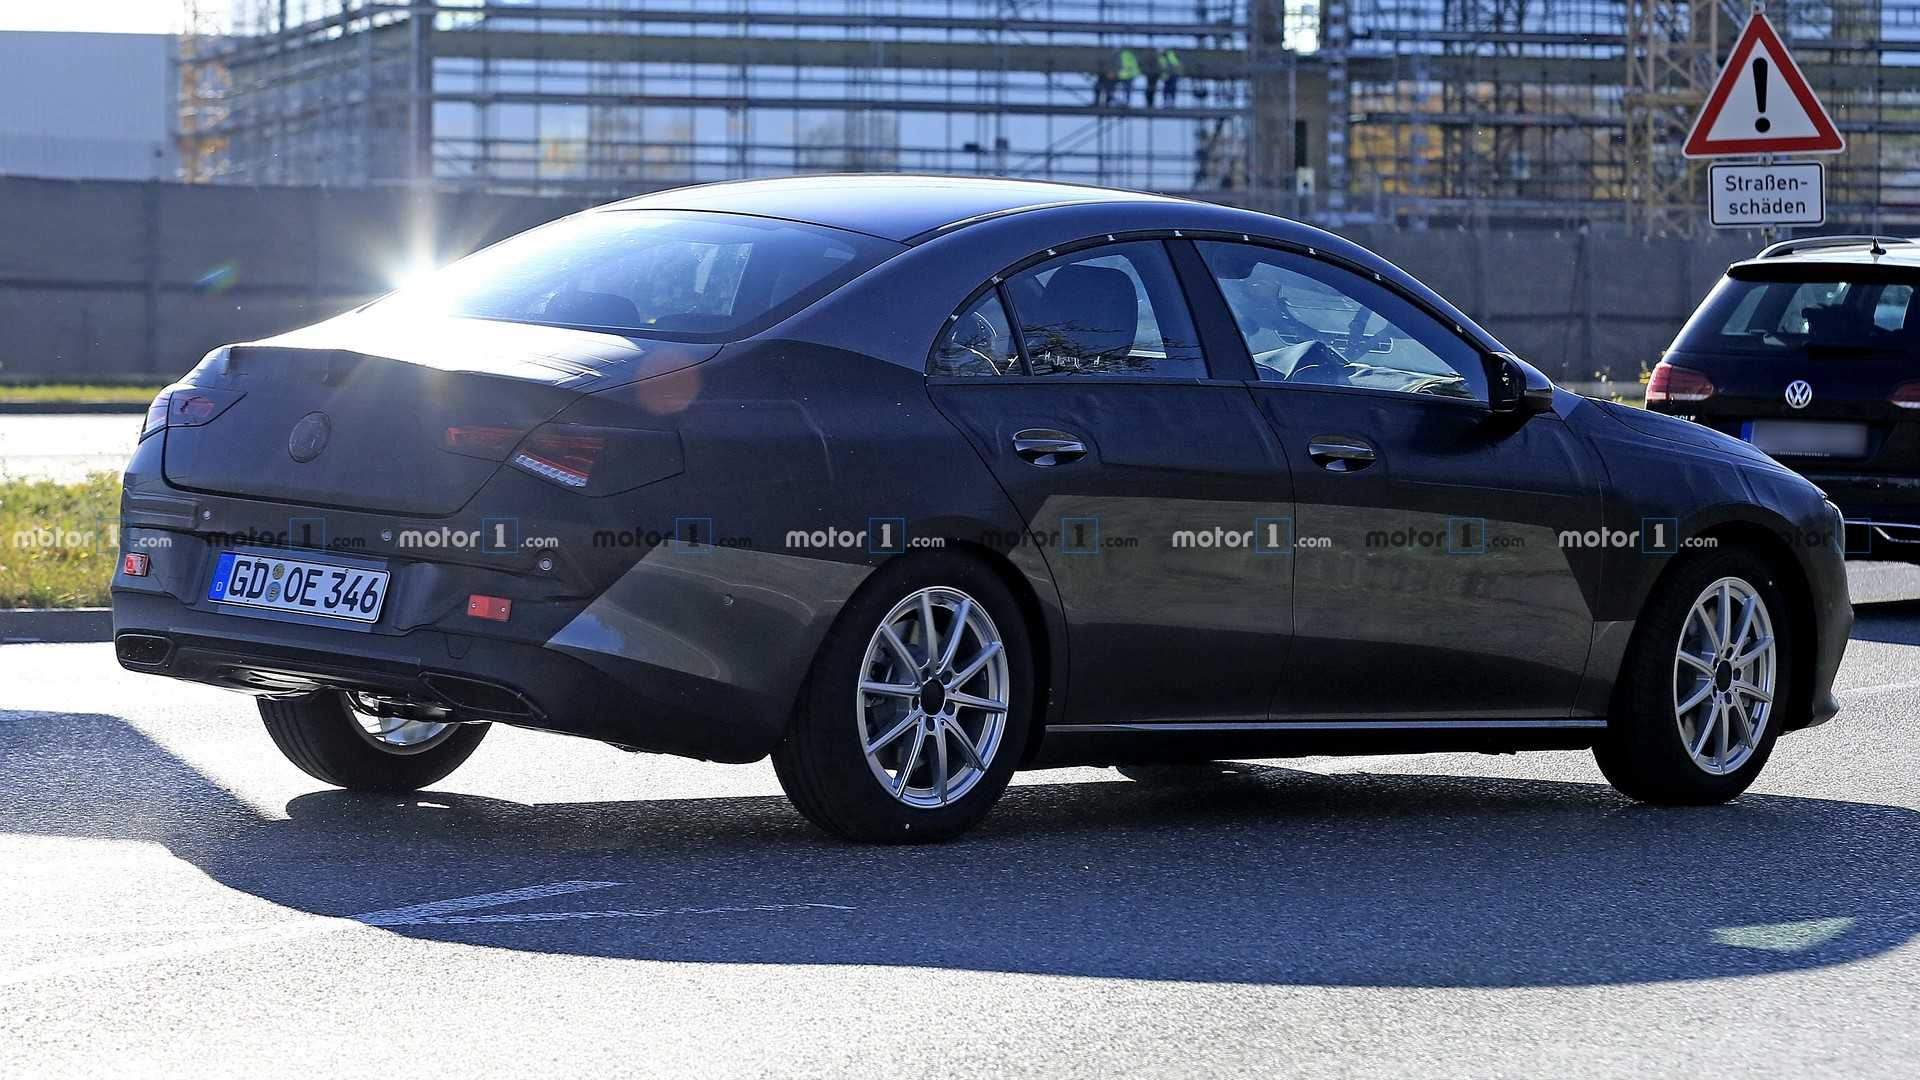 2019 - [Mercedes-Benz] CLA II - Page 4 2020-mercedes-cla-spy-photo